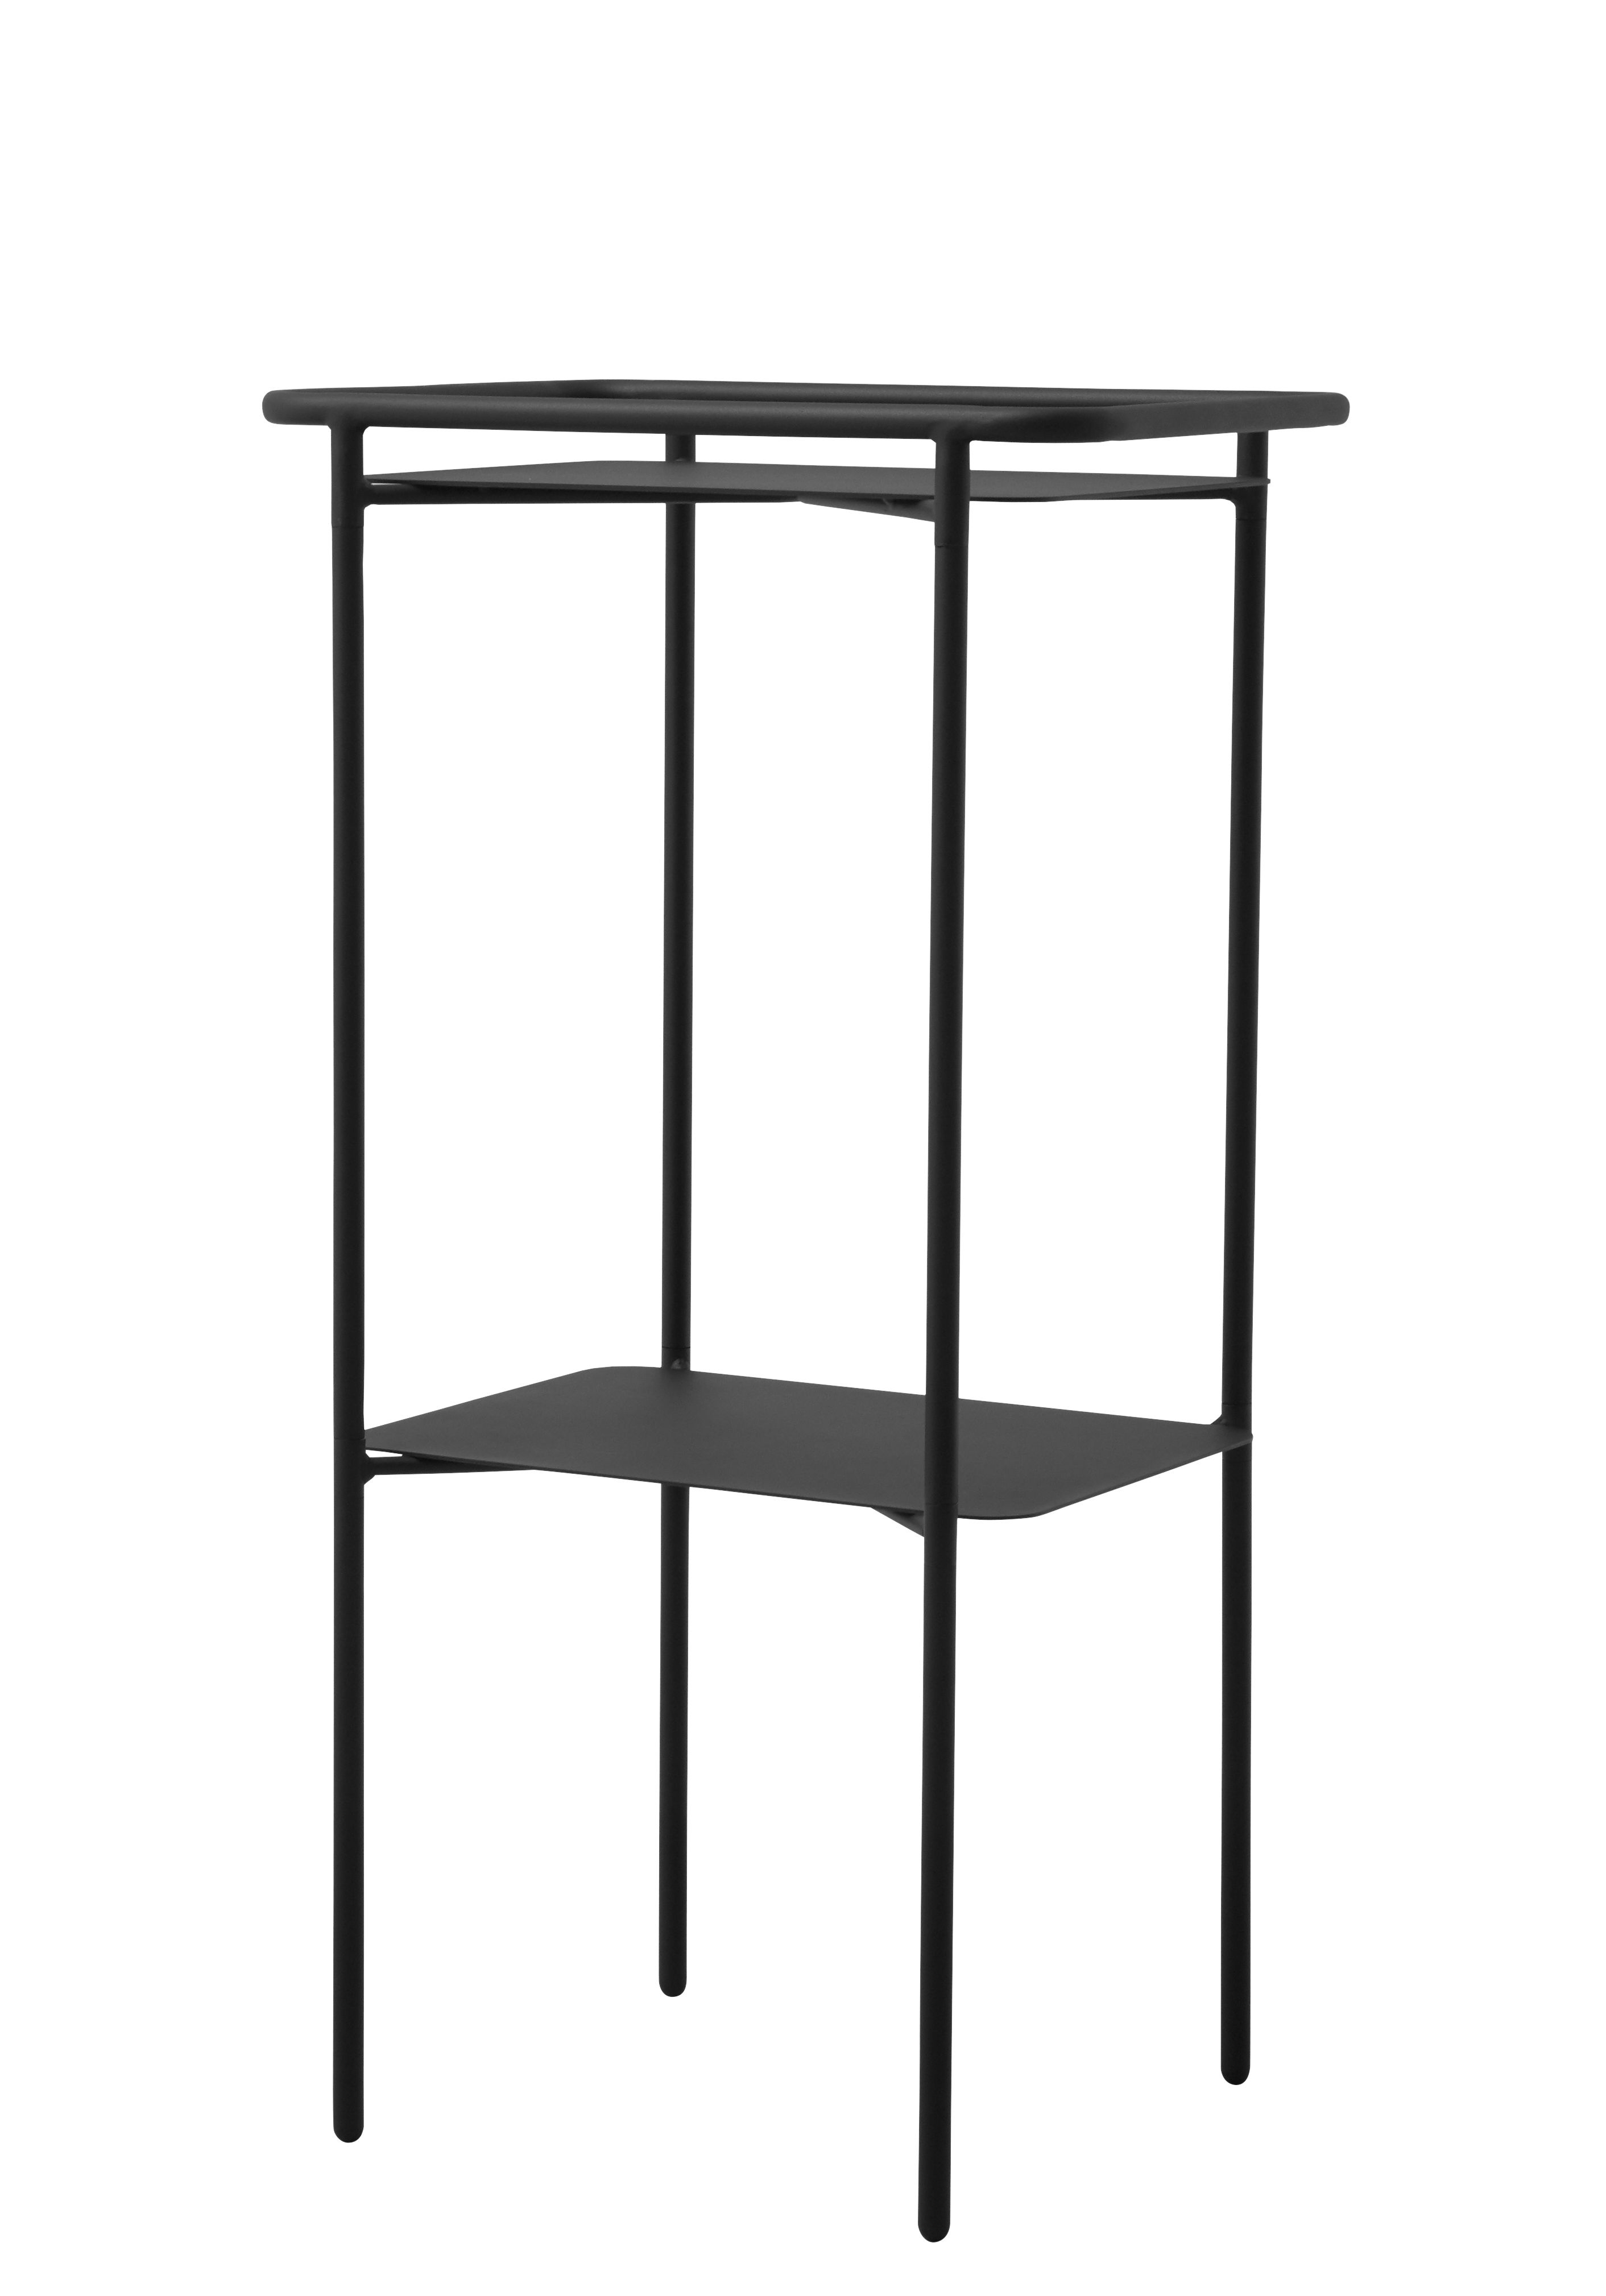 Furniture - Coffee Tables - Copenhagen Tray Small table - Metal / H 89 cm by Menu - Black - Painted steel